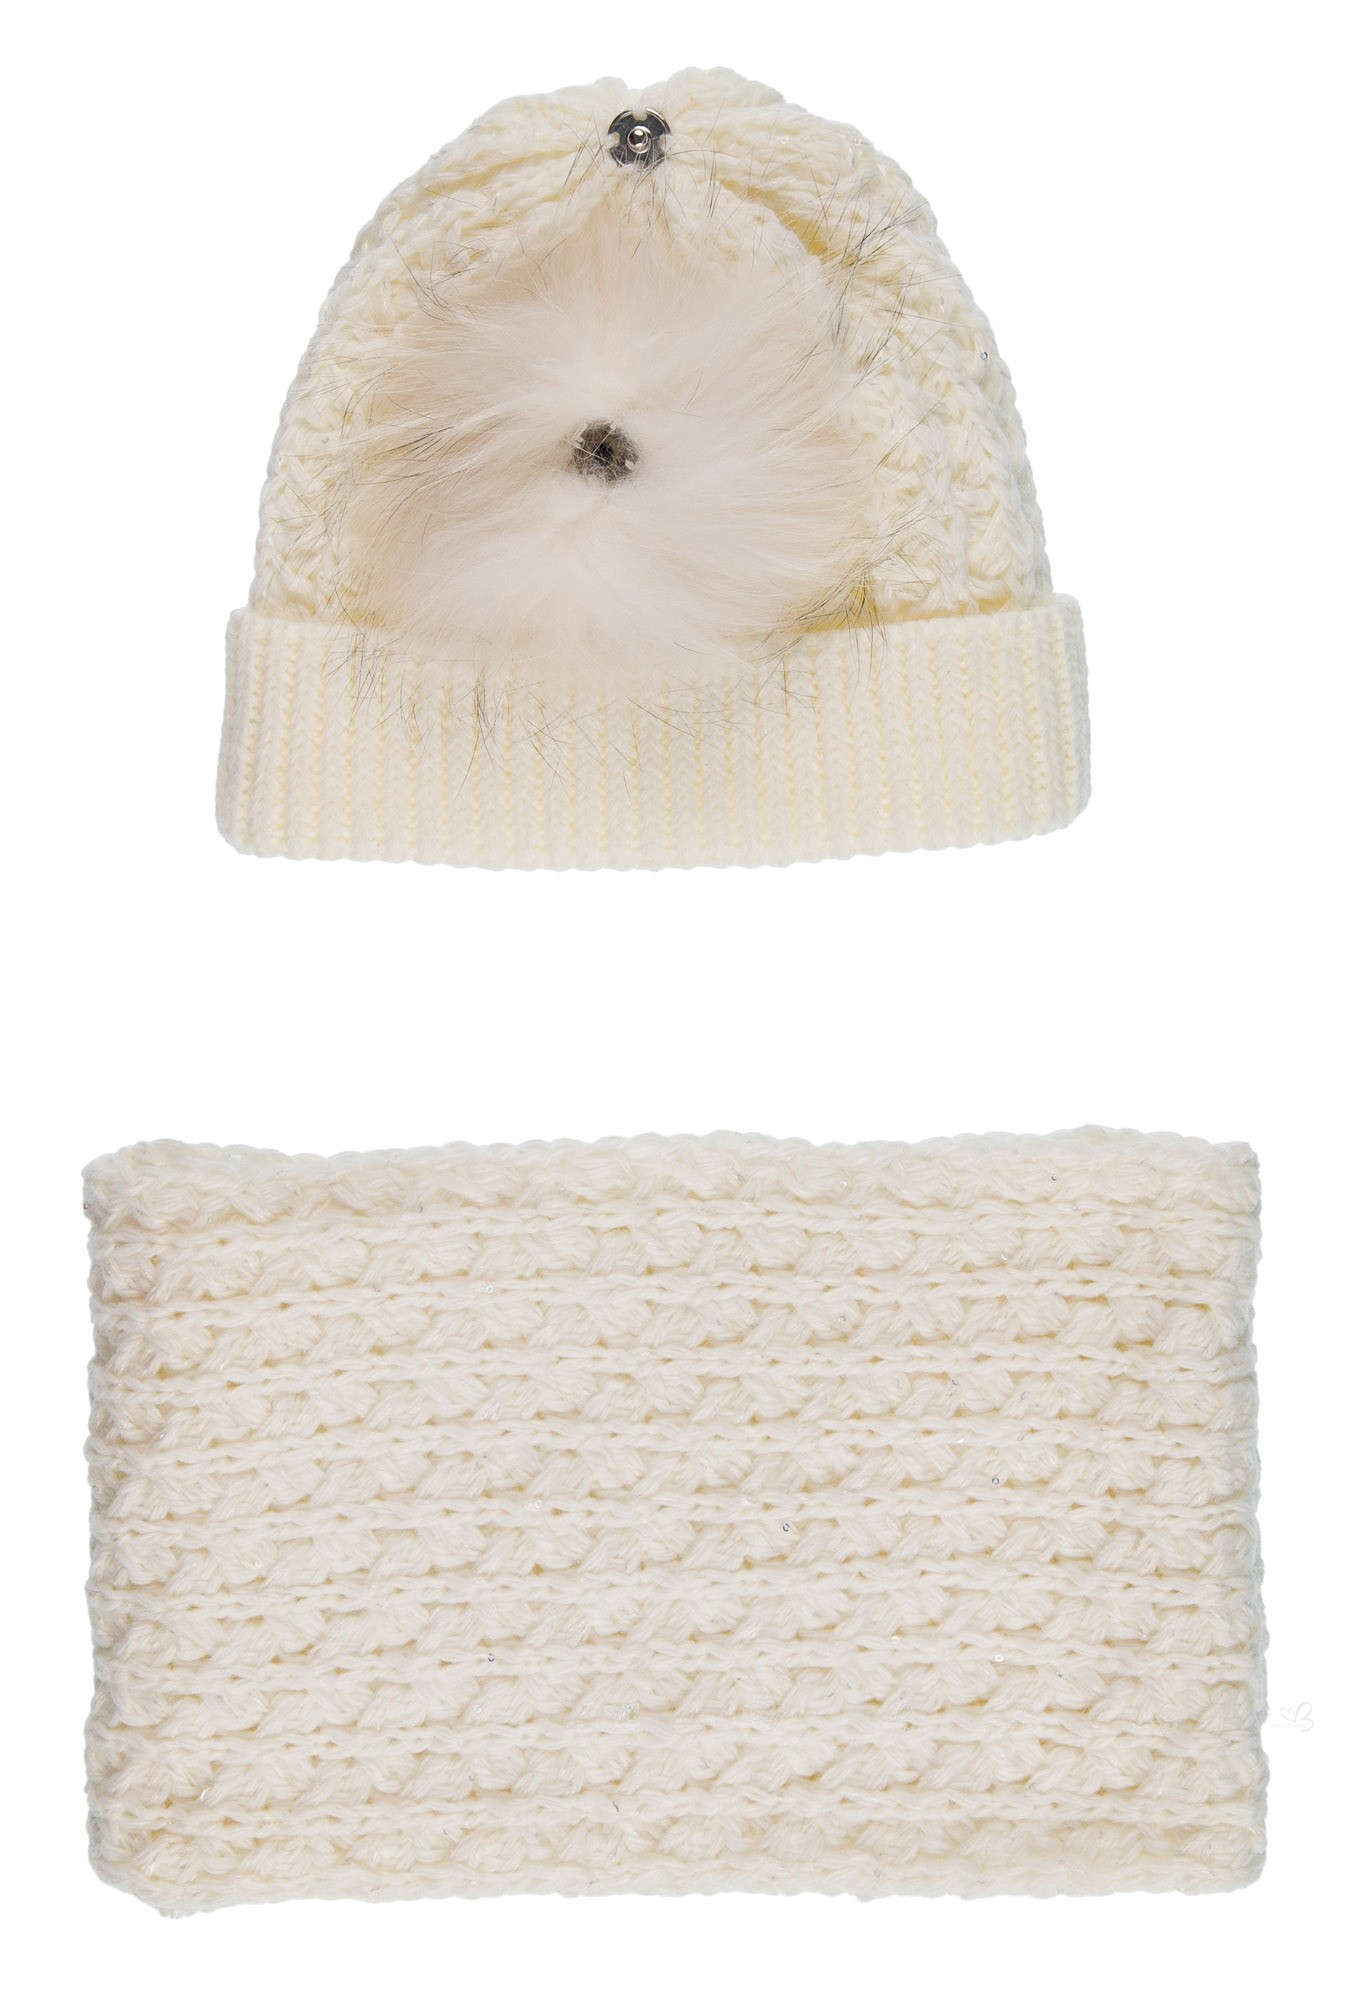 b07b4af9f22 ... Ivory Knitted Hat with Fur Pom-Pom   Snood Set with sparkly sequins ...